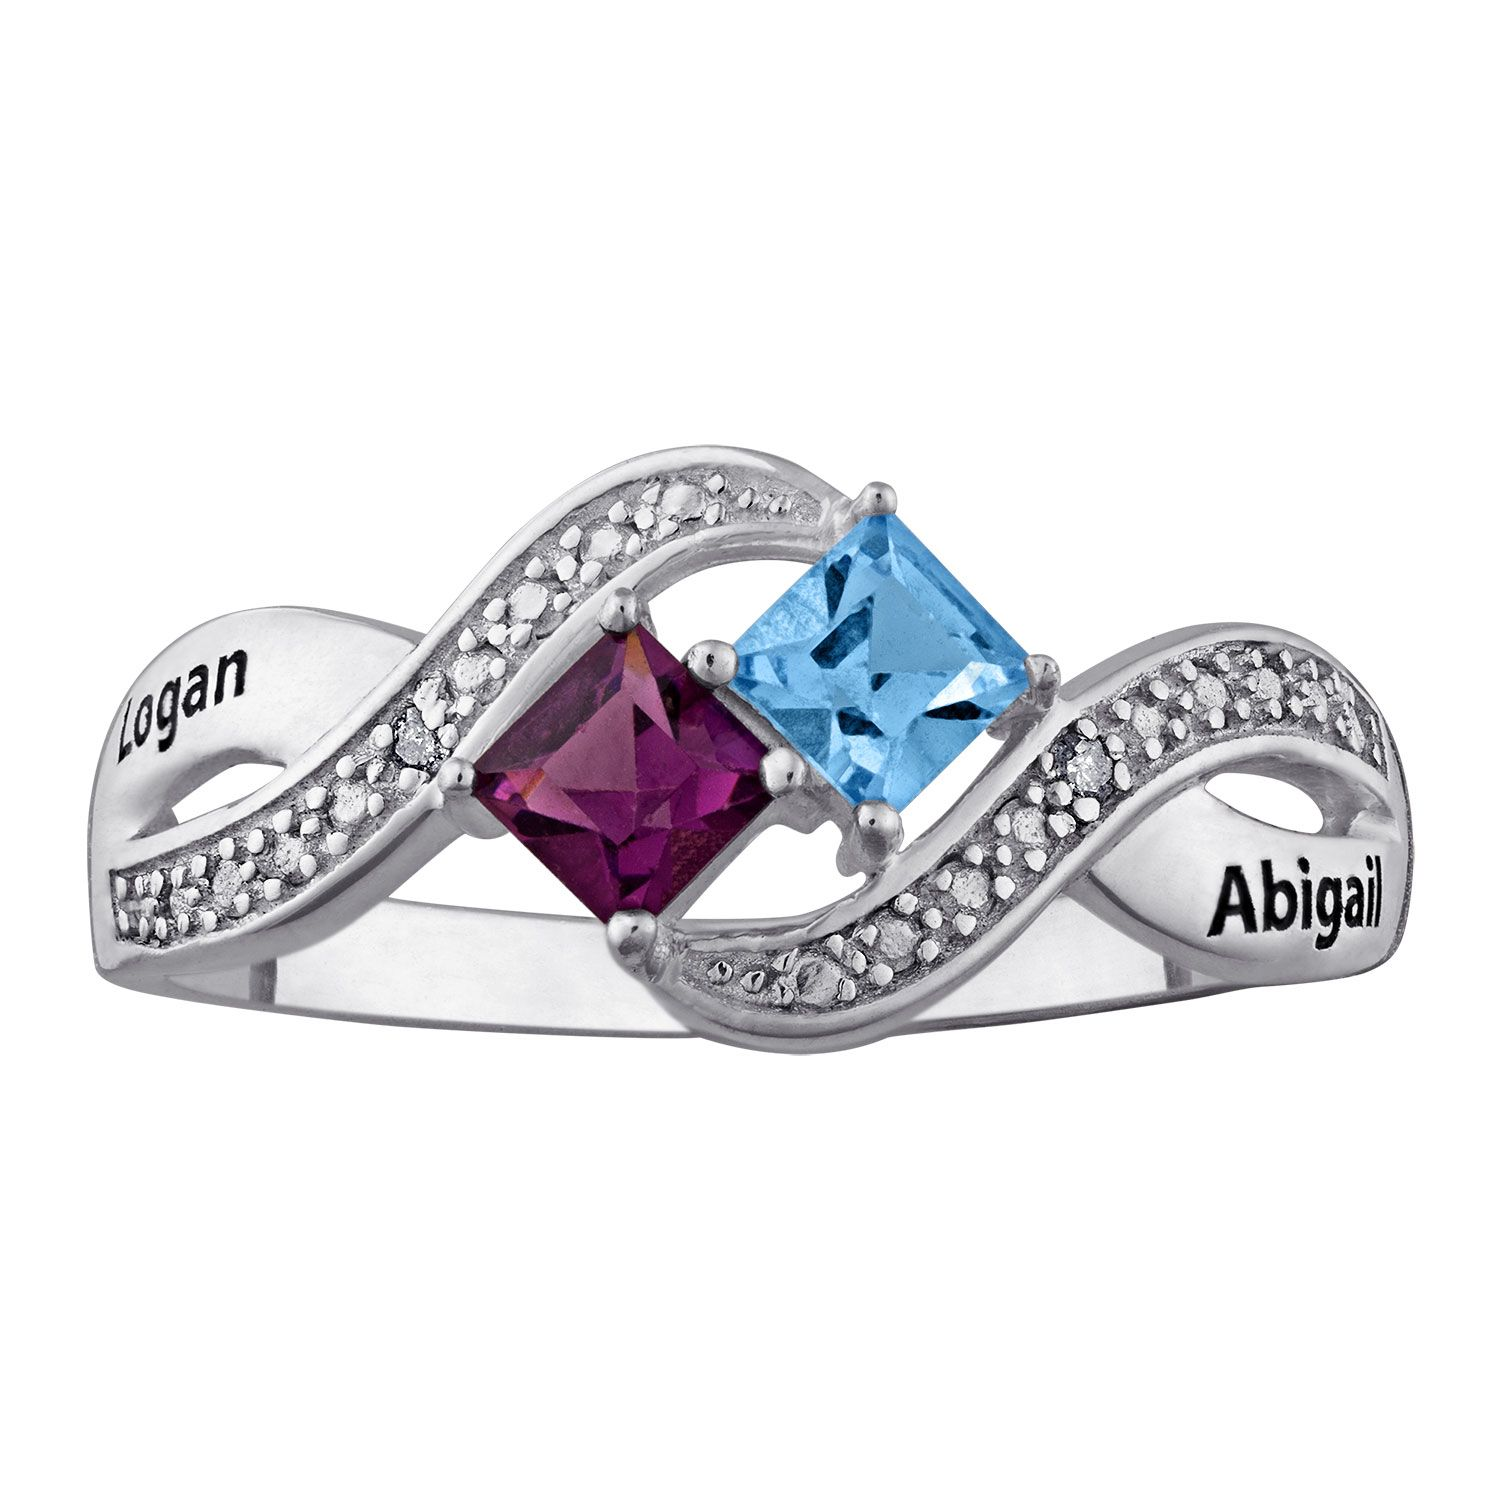 Fine Jewelry Personalized Diamond-Accent Couples Name Birthstone Crossover Ring QyK86l6D9